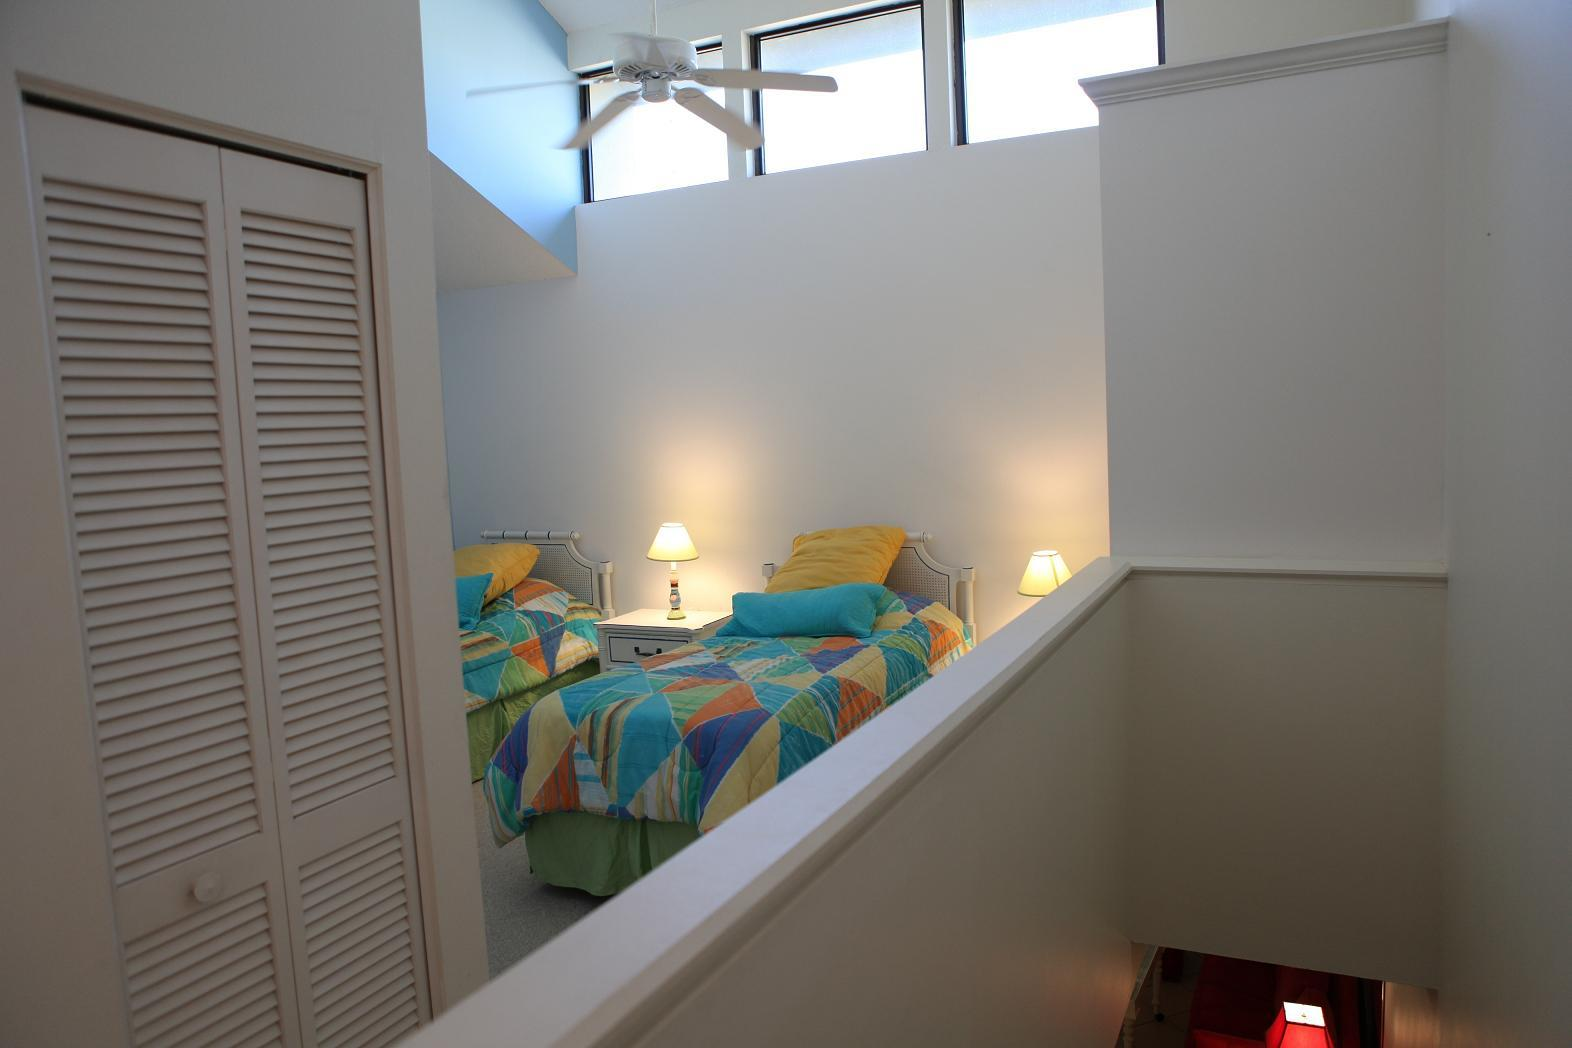 Bedroom 2 (enclosed loft)